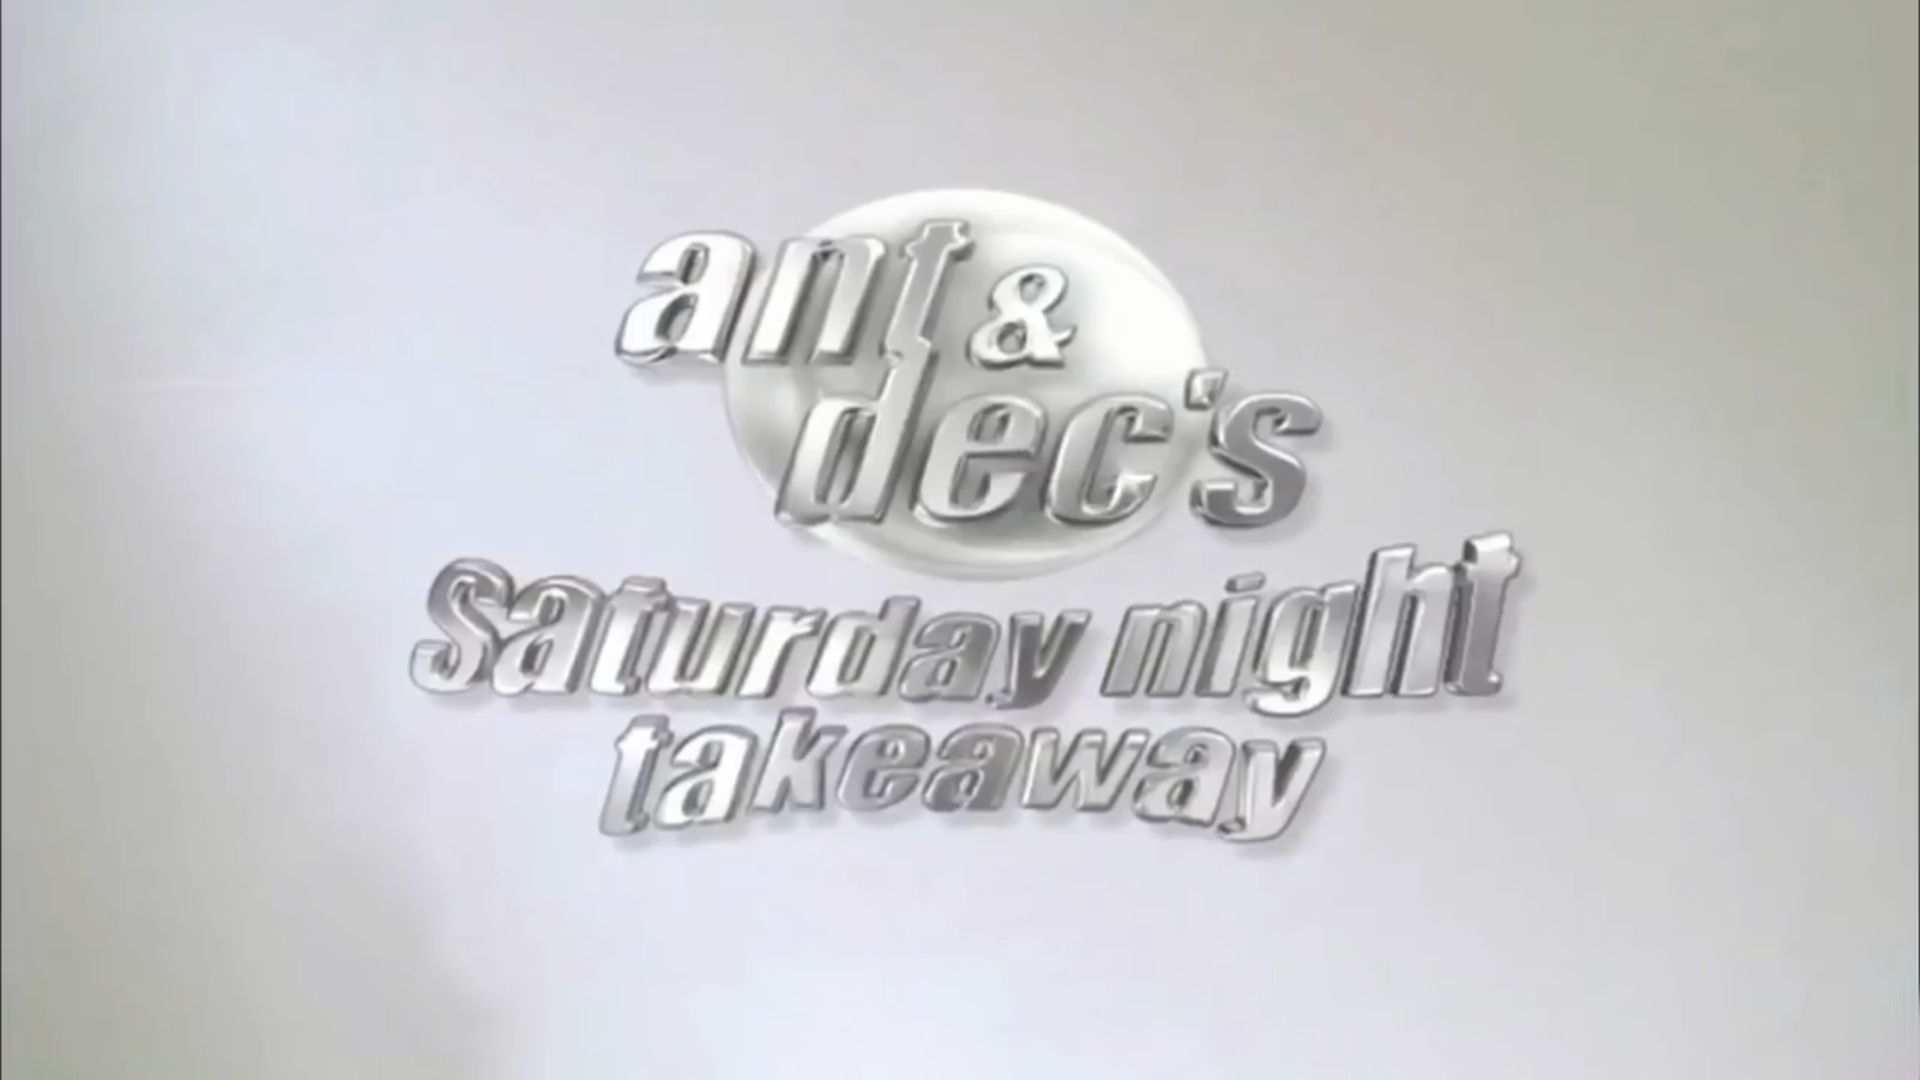 Ant & Dec's Saturday Night Takeaway/Other